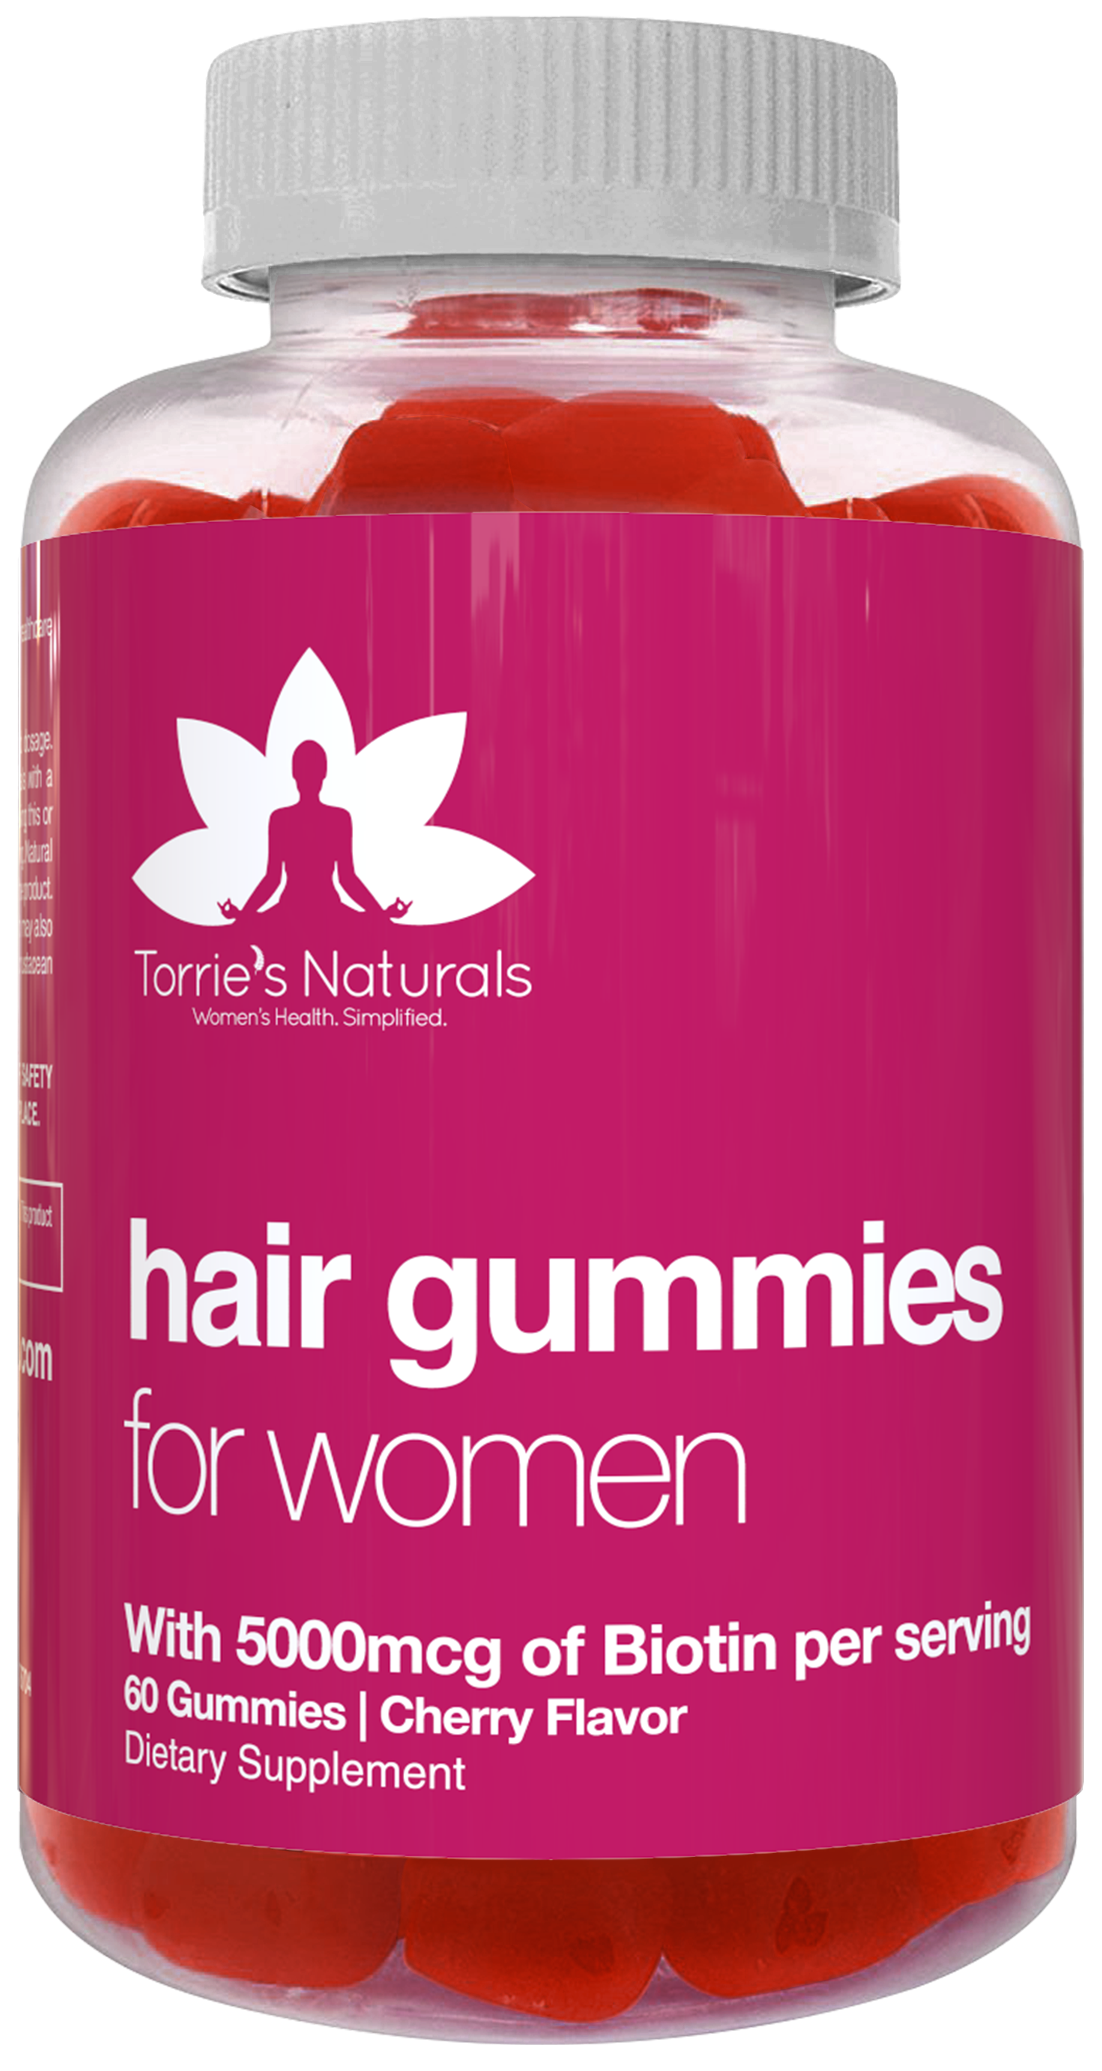 Vegan Hair Gummy Vitamins with 5000 mcg of Biotin